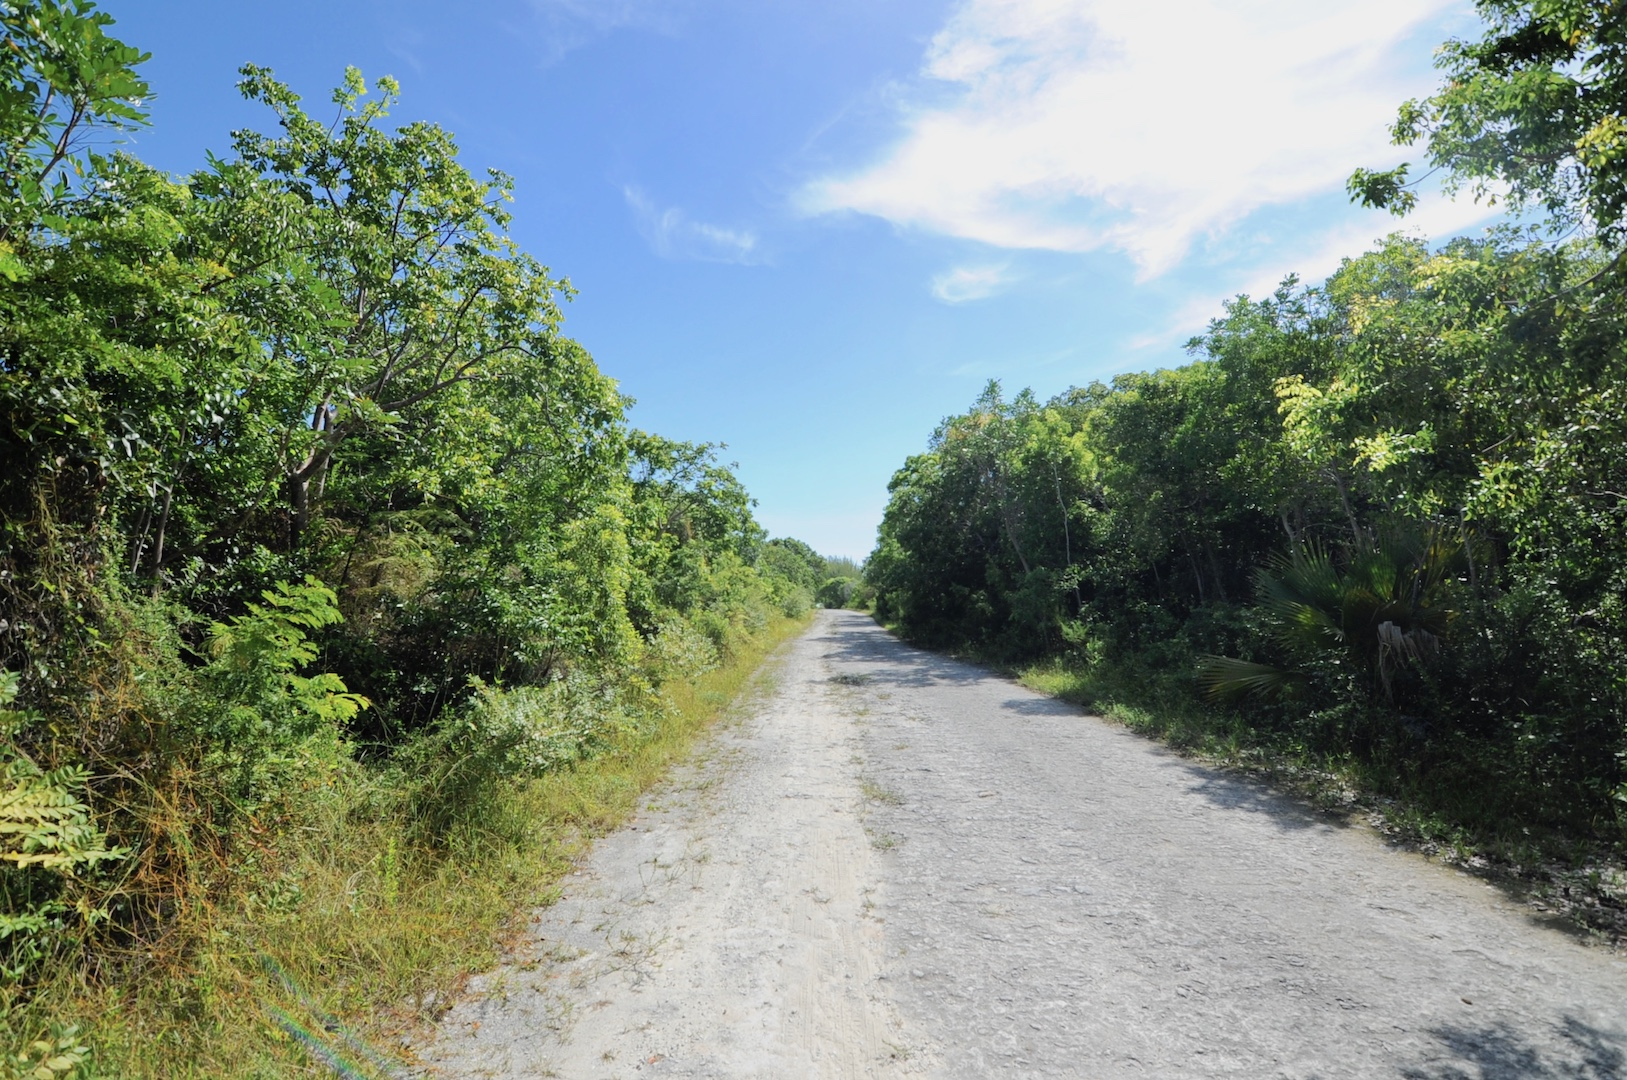 Land for sale in Bahama Palm Shores